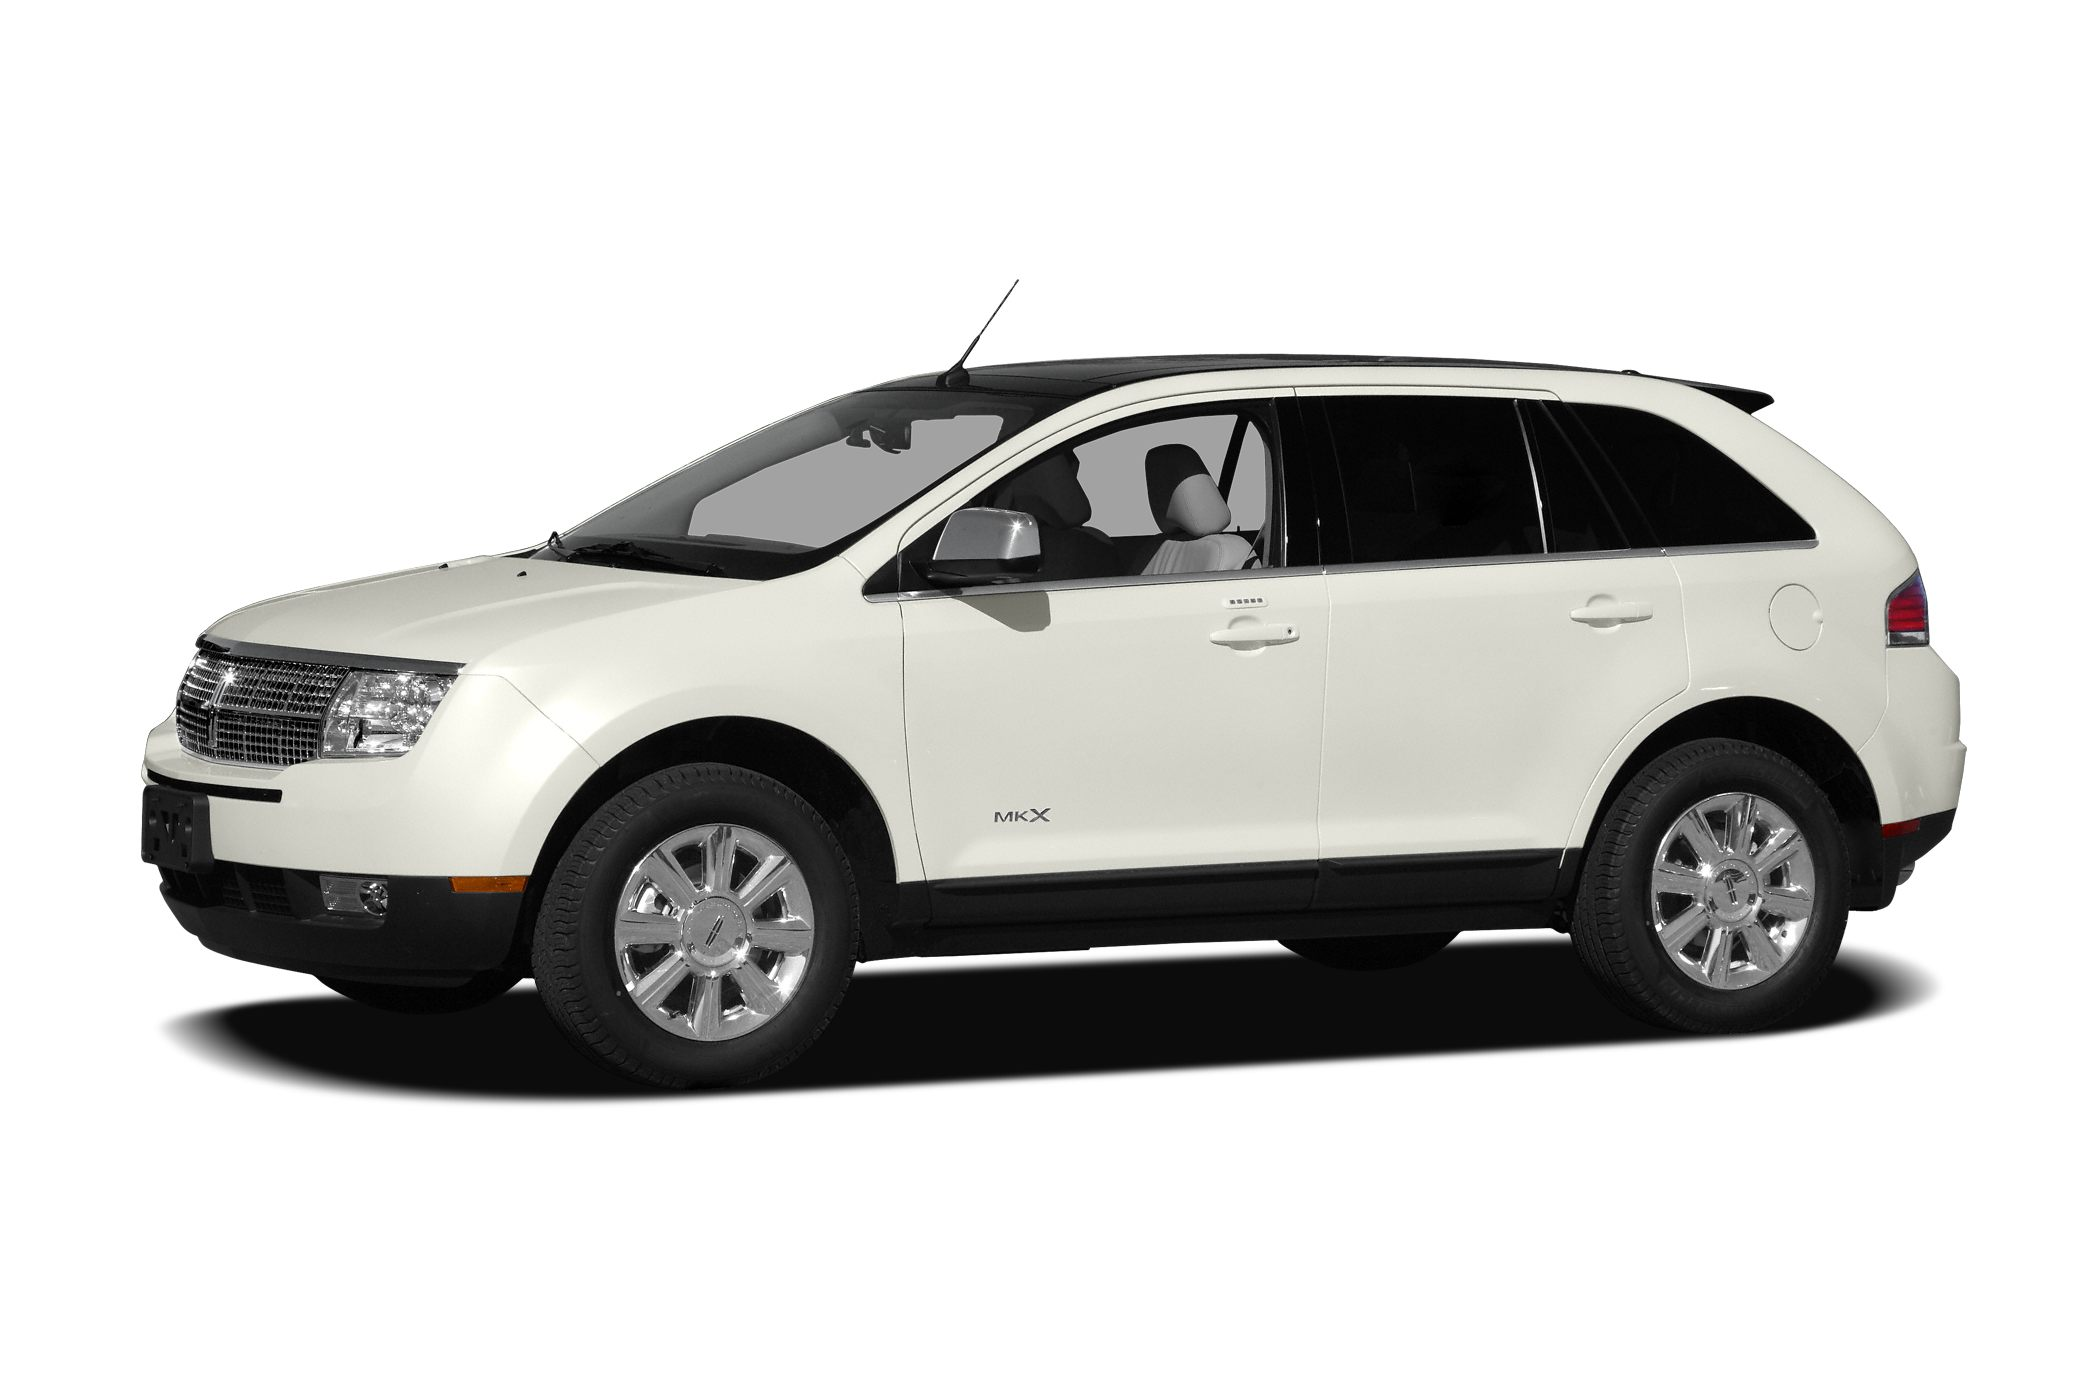 mkx mks specs pictures information lincoln